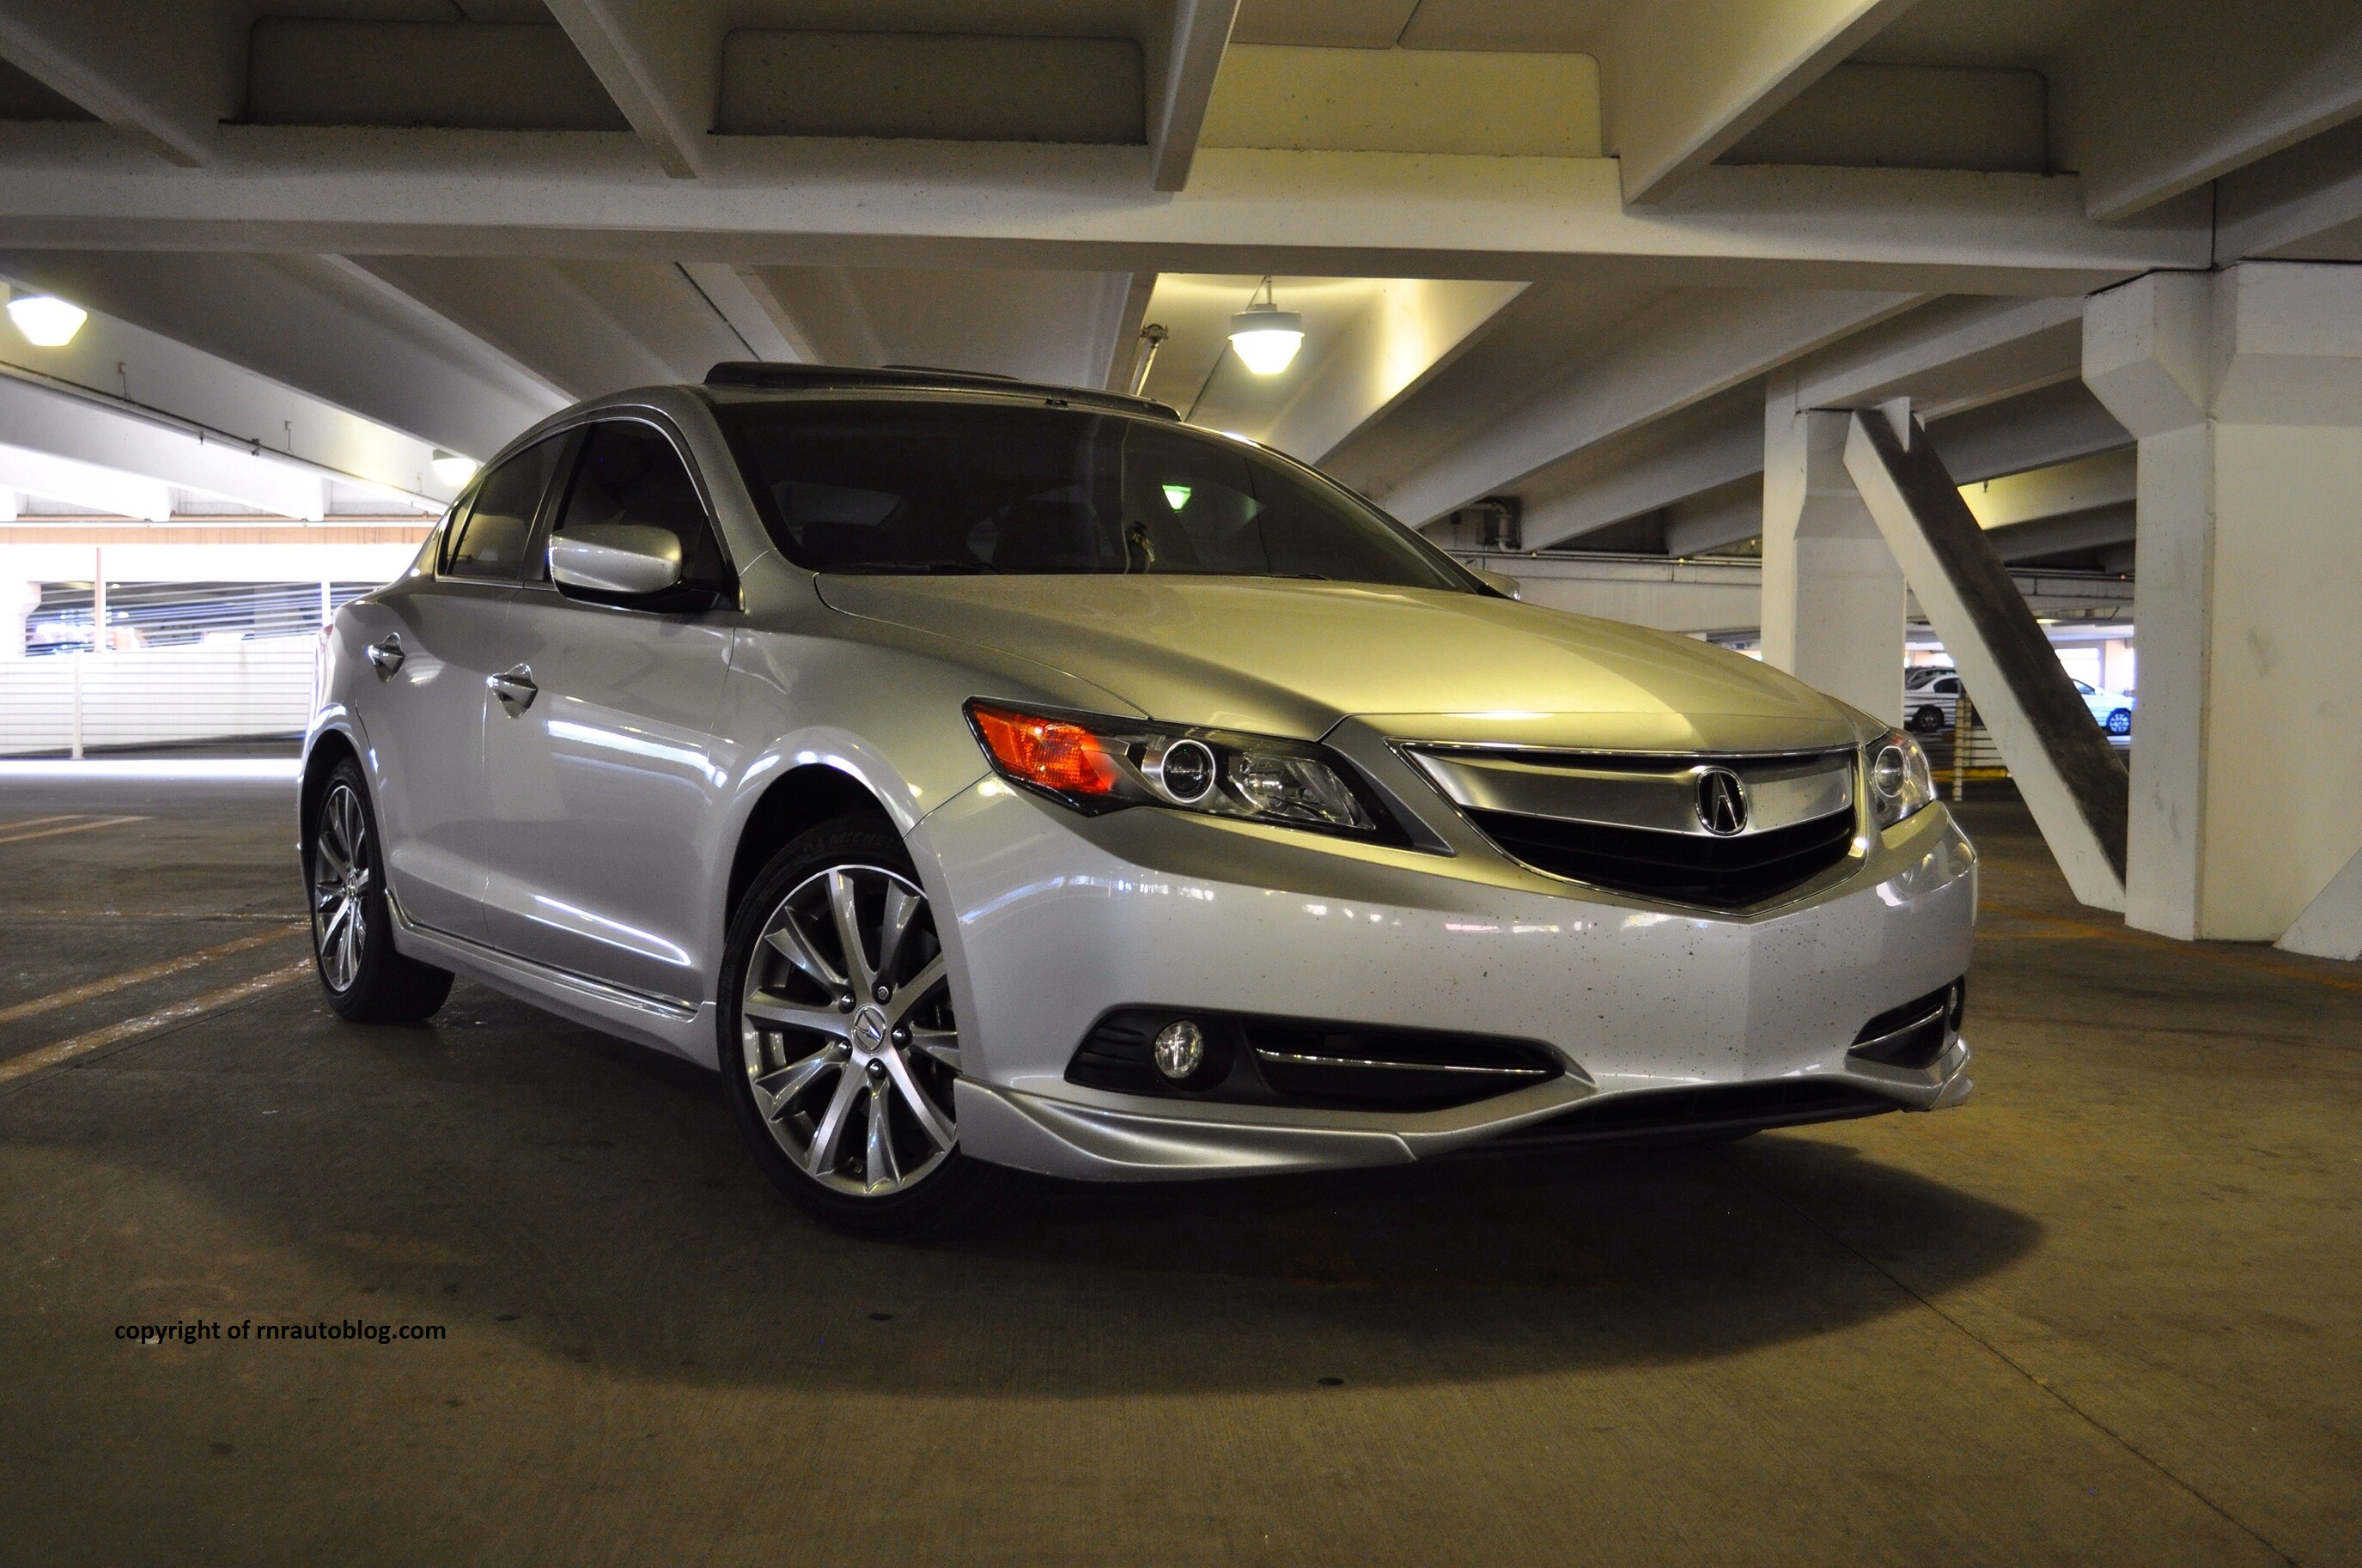 2013 Acura Ilx 2 4 Review Rnr Automotive Blog